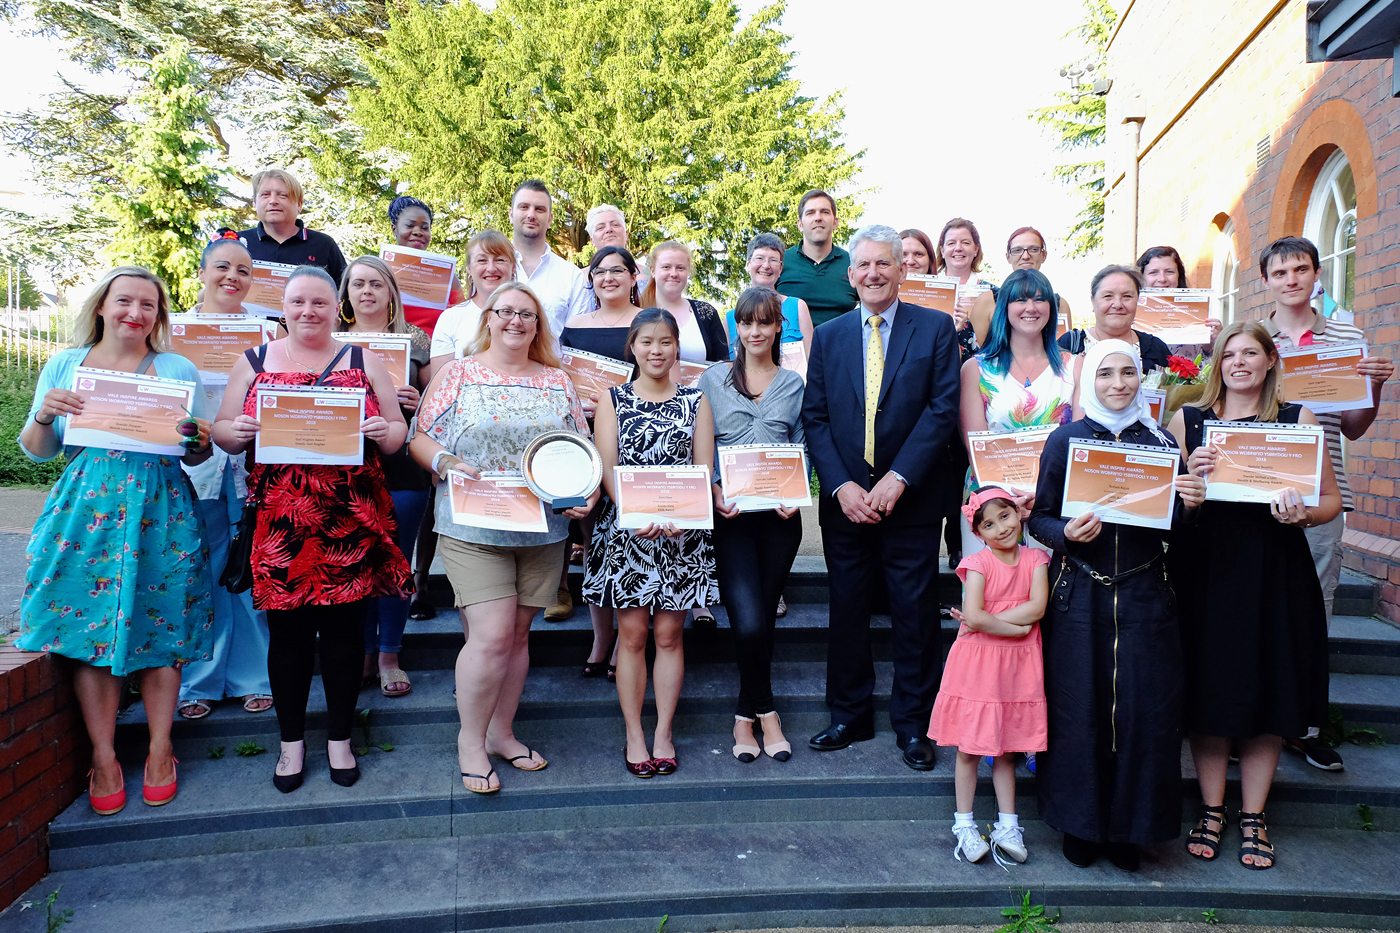 Learners and volunteers are celebrated at awards event